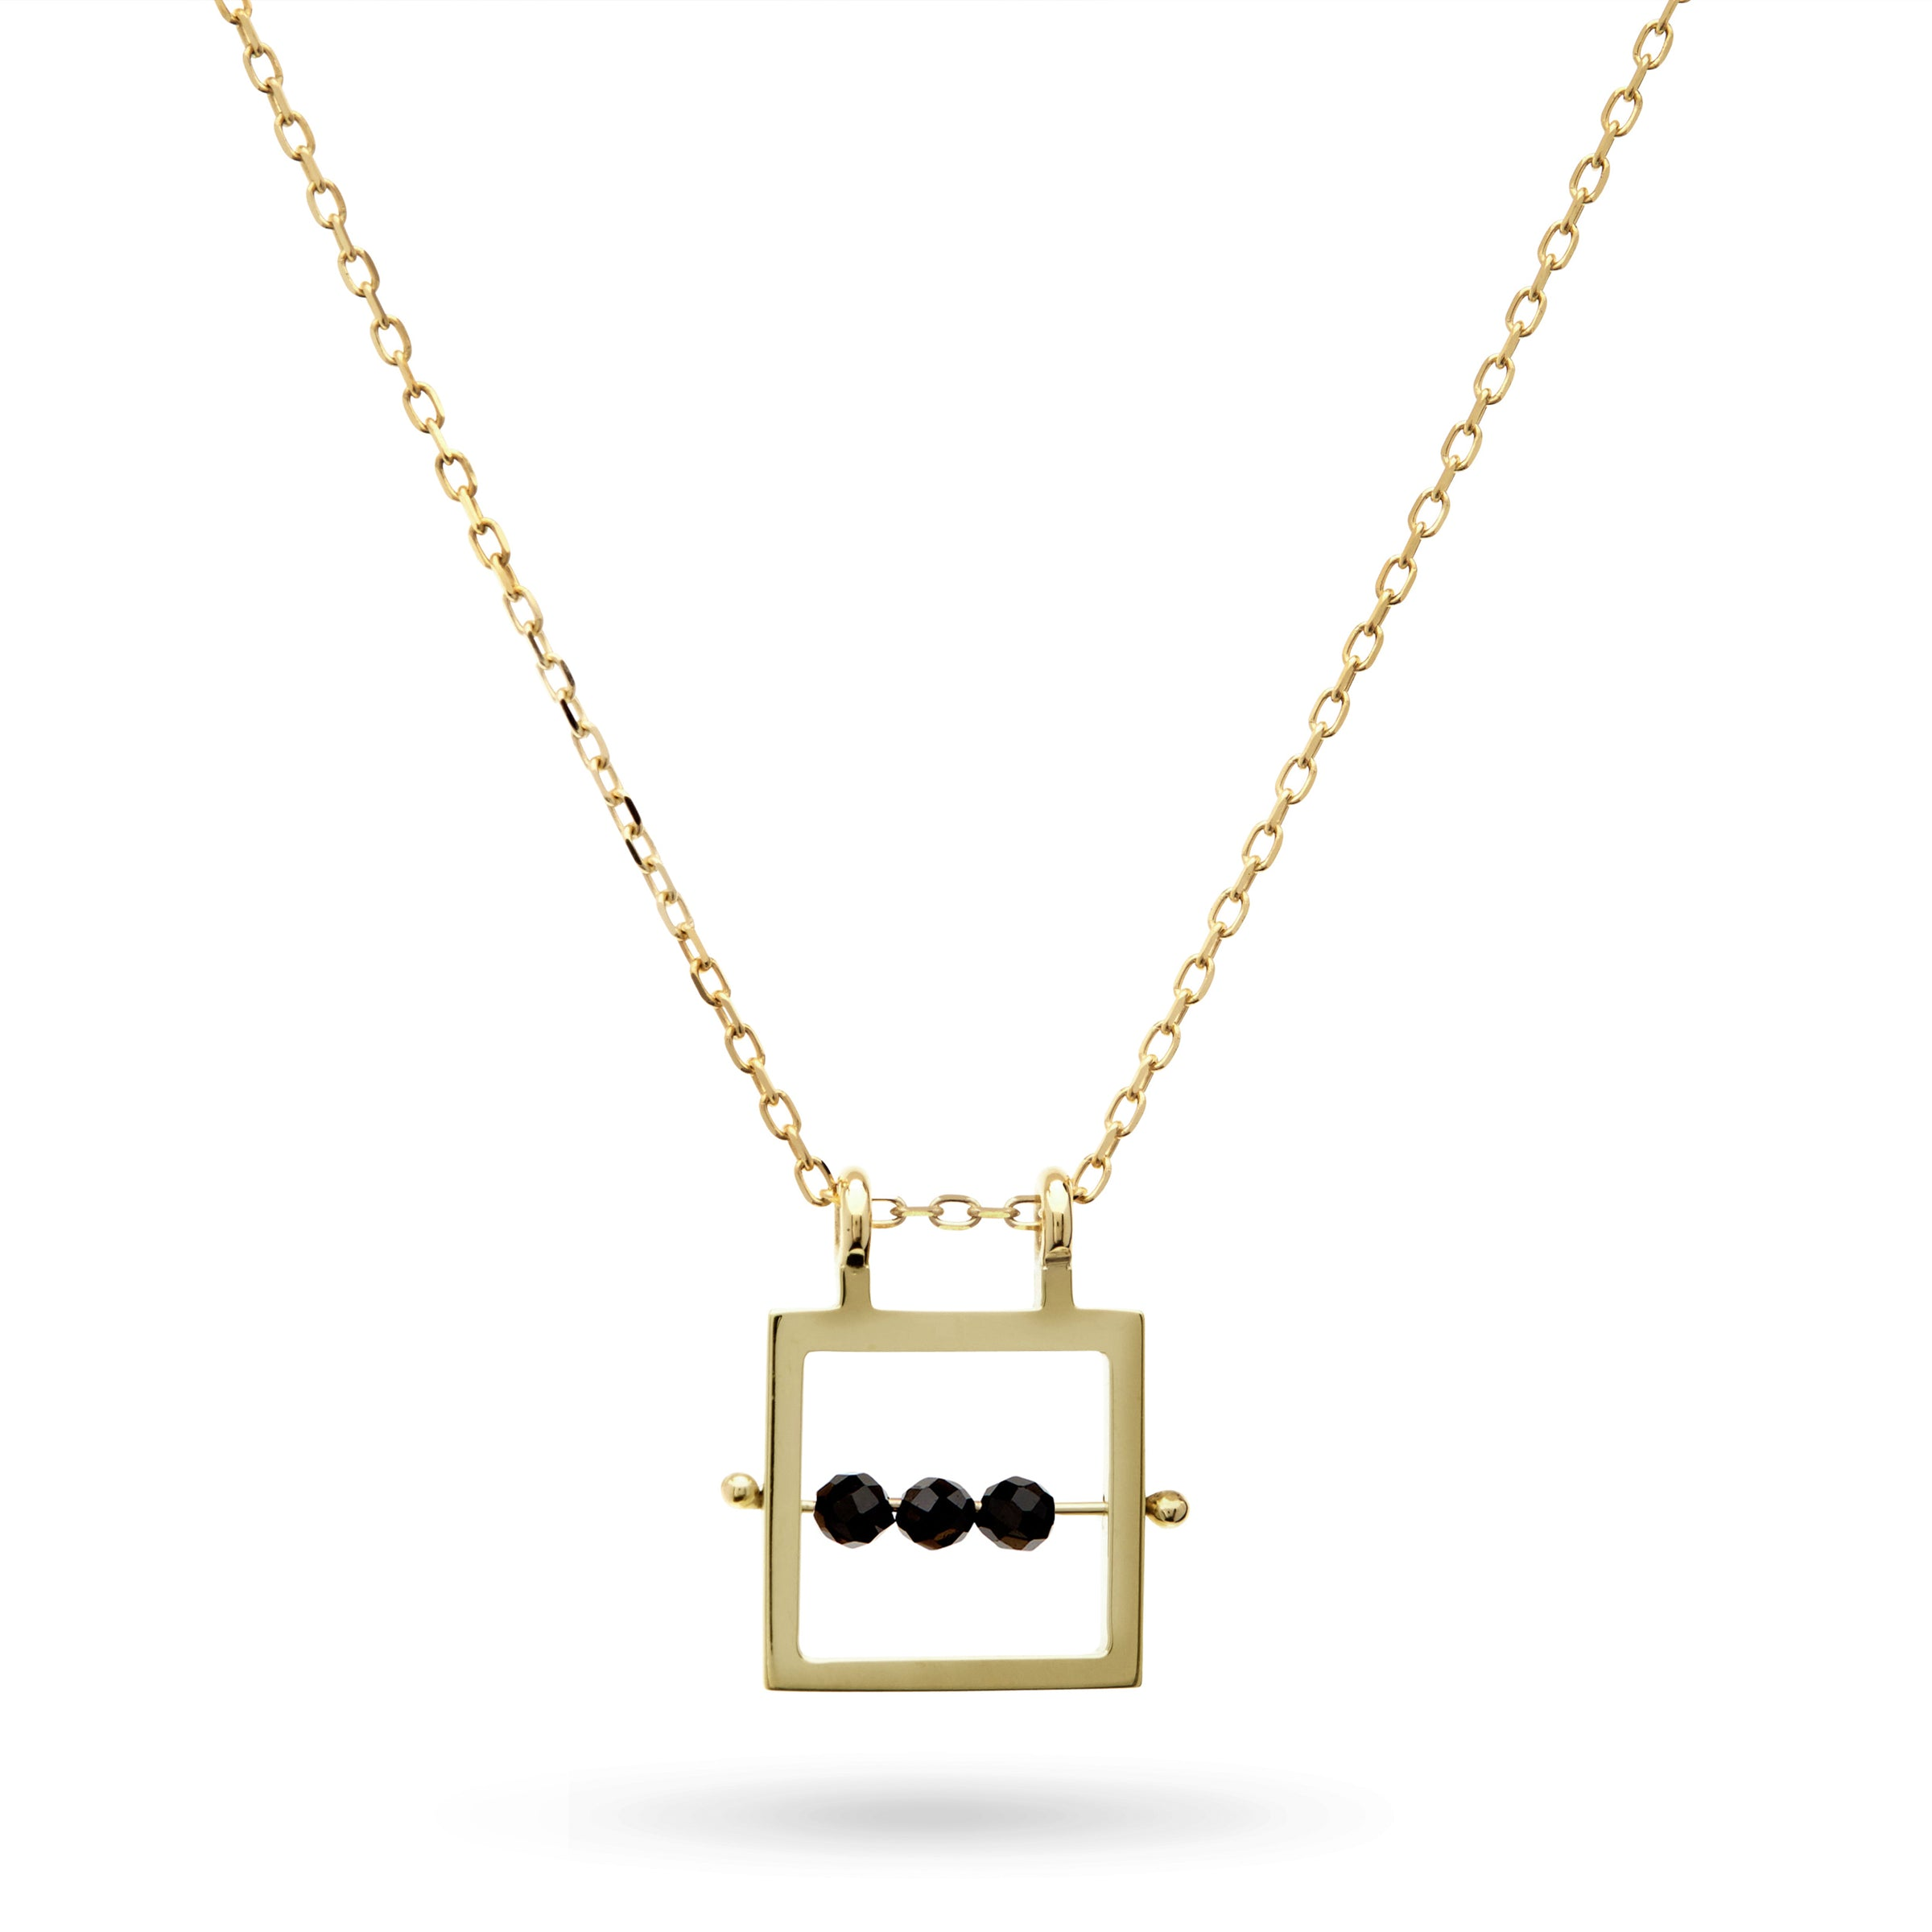 Square Black Spinel Abacus Necklace